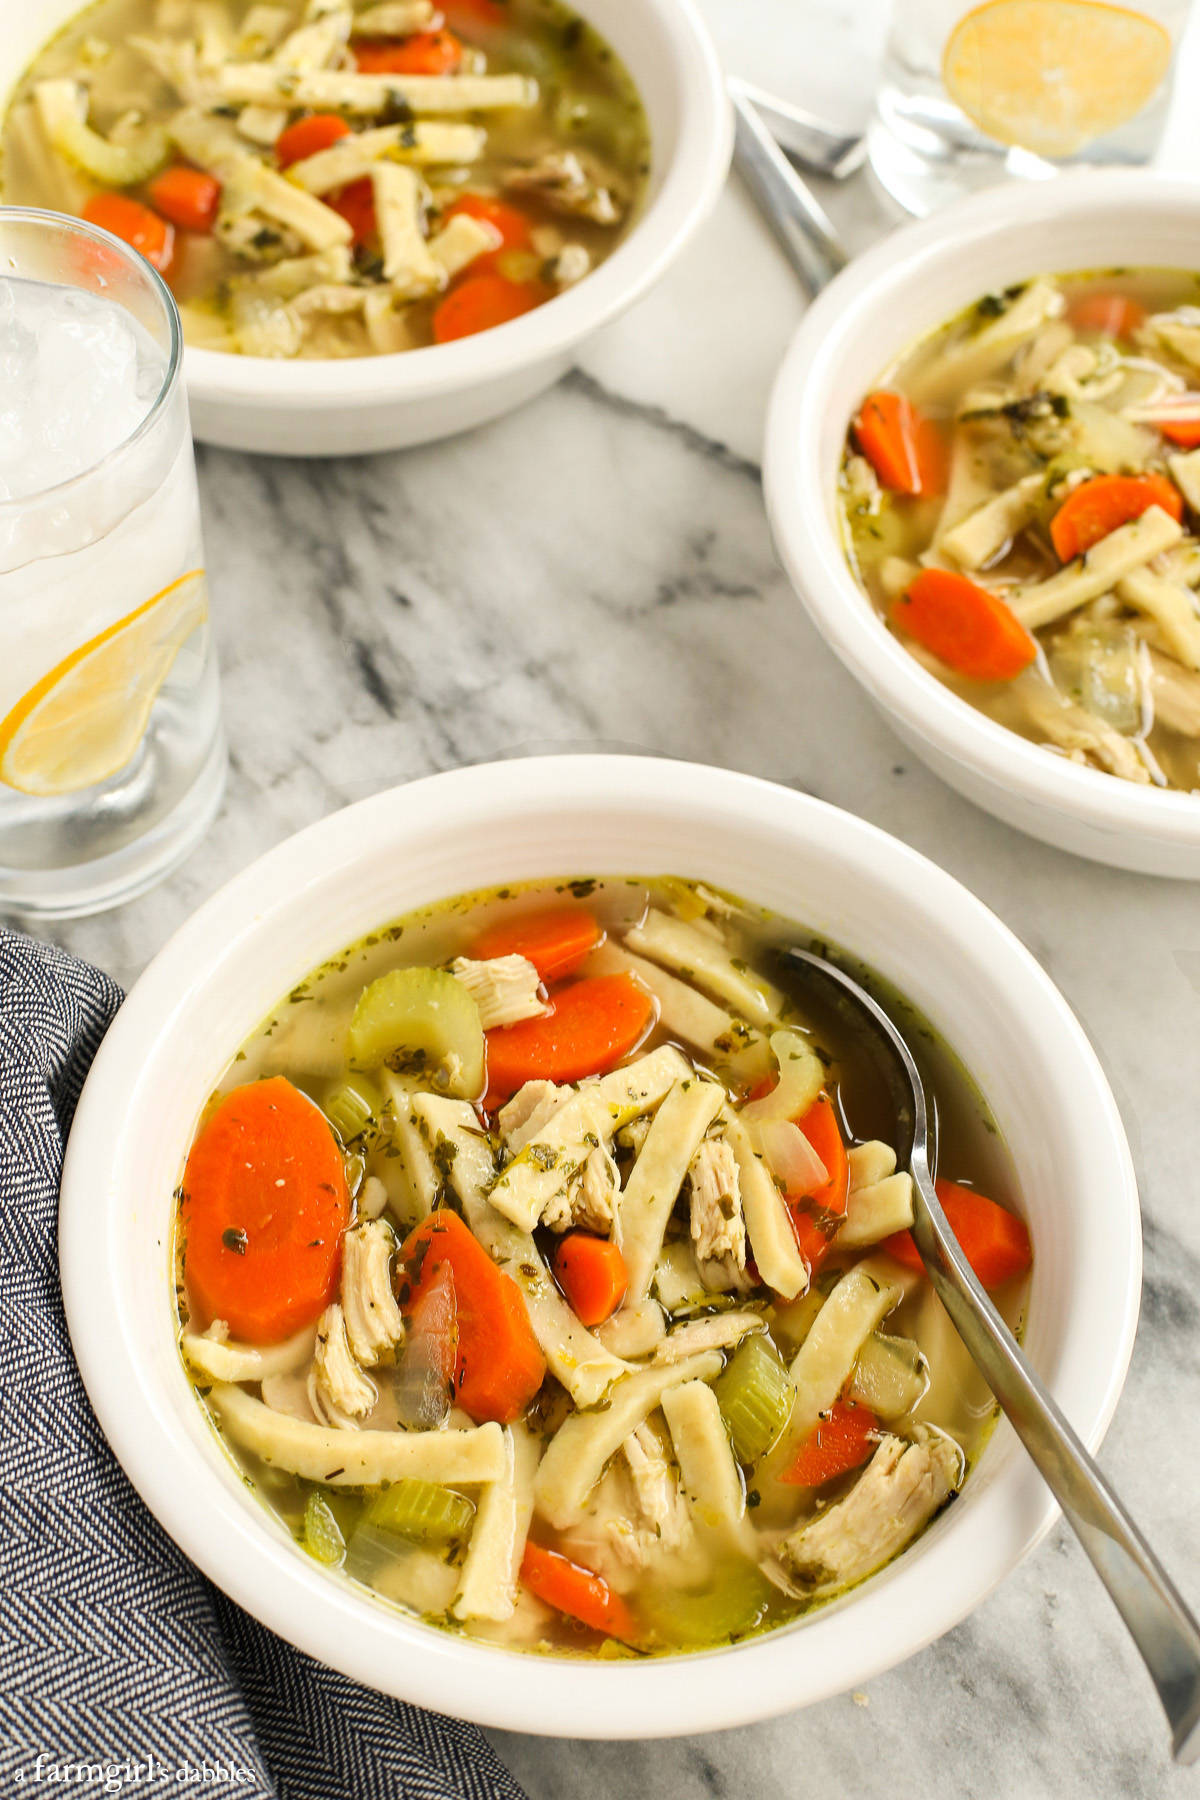 Mom's Homemade Chicken Noodle Soup from afarmgirlsdabbles.com